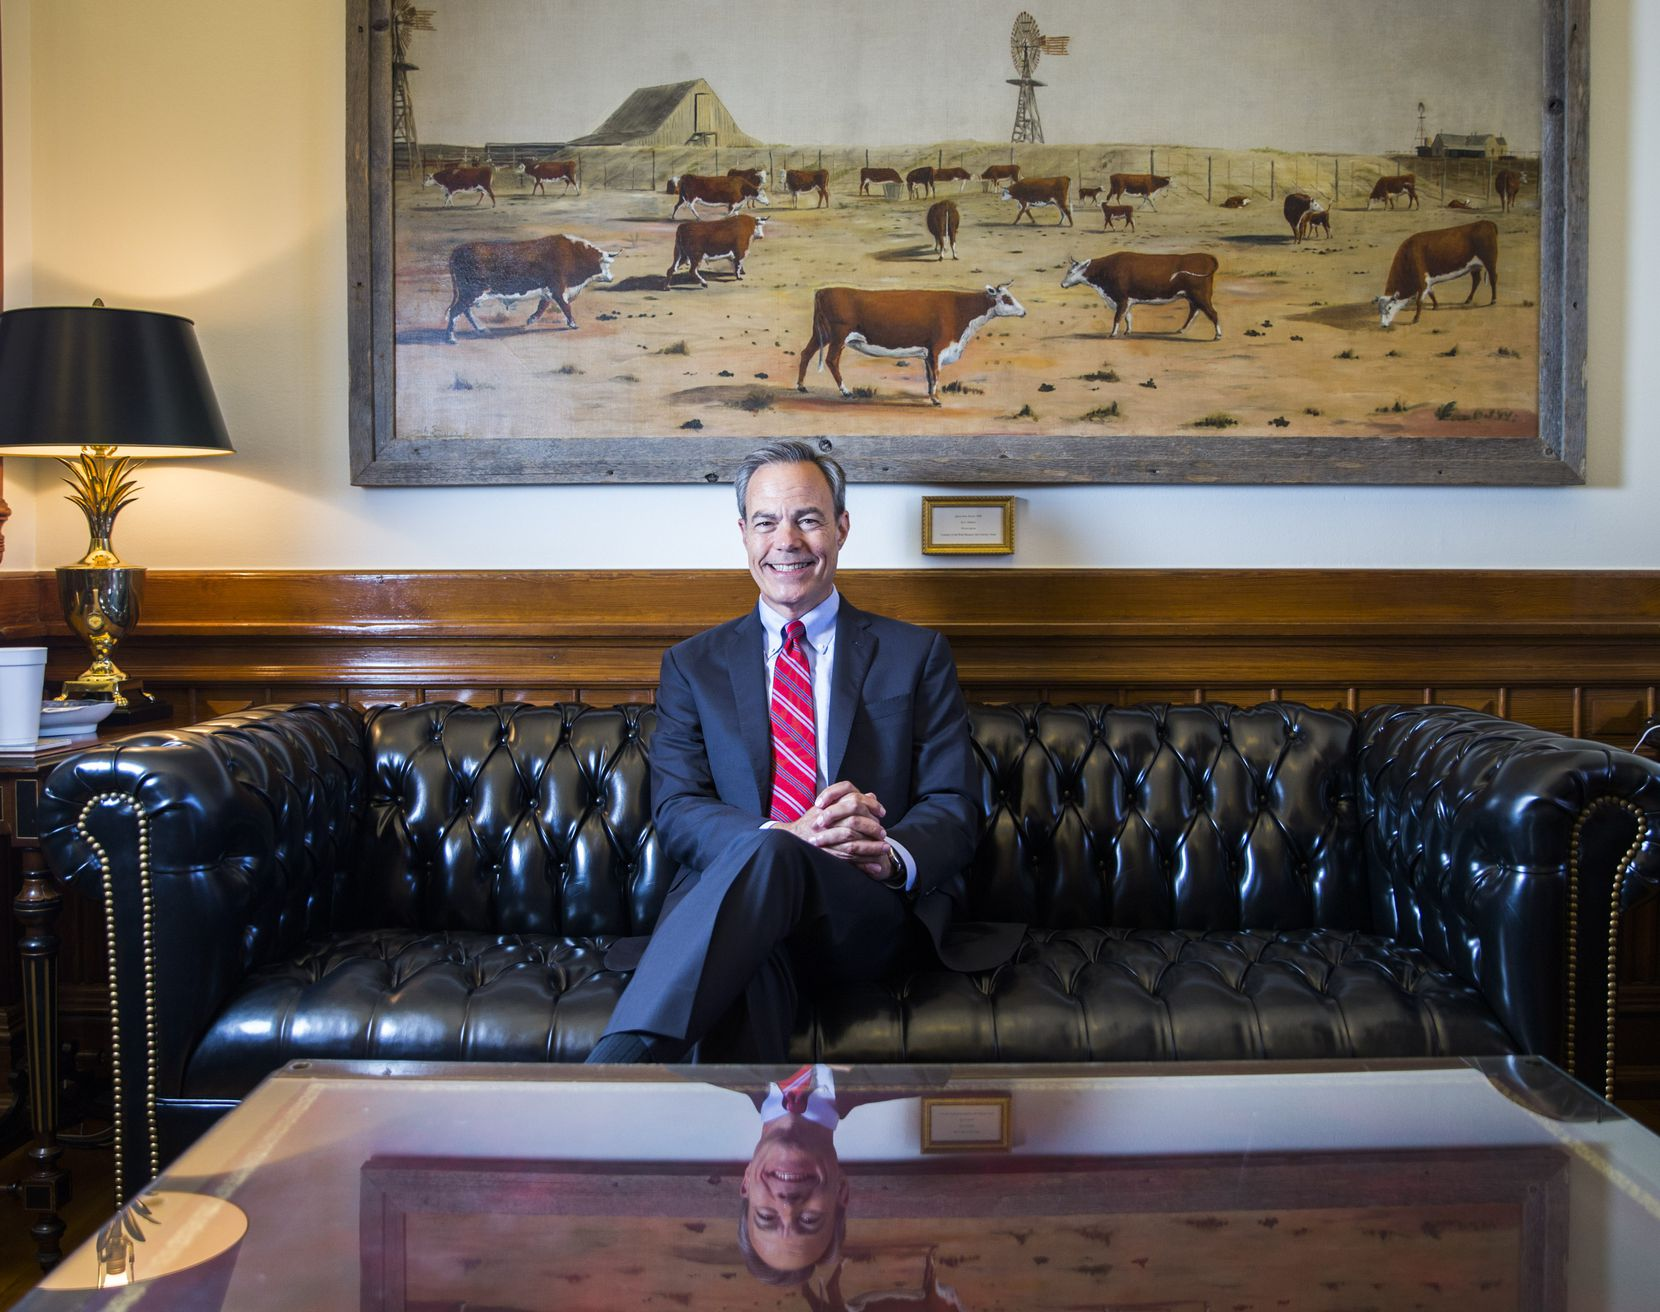 Speaker of the House Joe Straus poses for a portrait in his office on the third day of a special legislative session on Thursday, July 20, 2017 at the Texas state capitol in Austin, Texas.